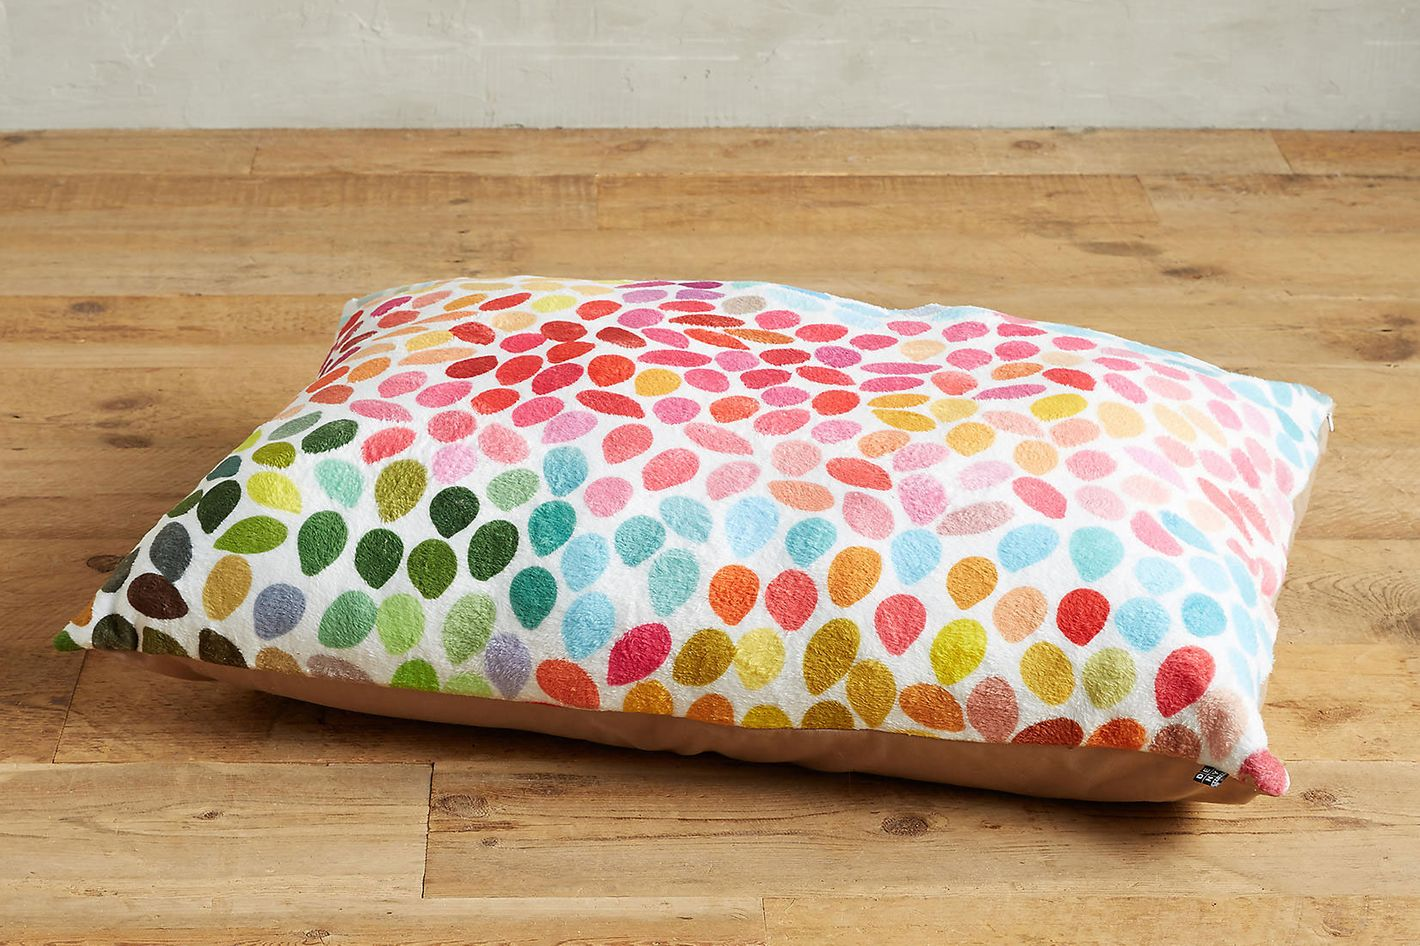 Watercolor Dog Bed by Garima Dhawan for DENY Designs